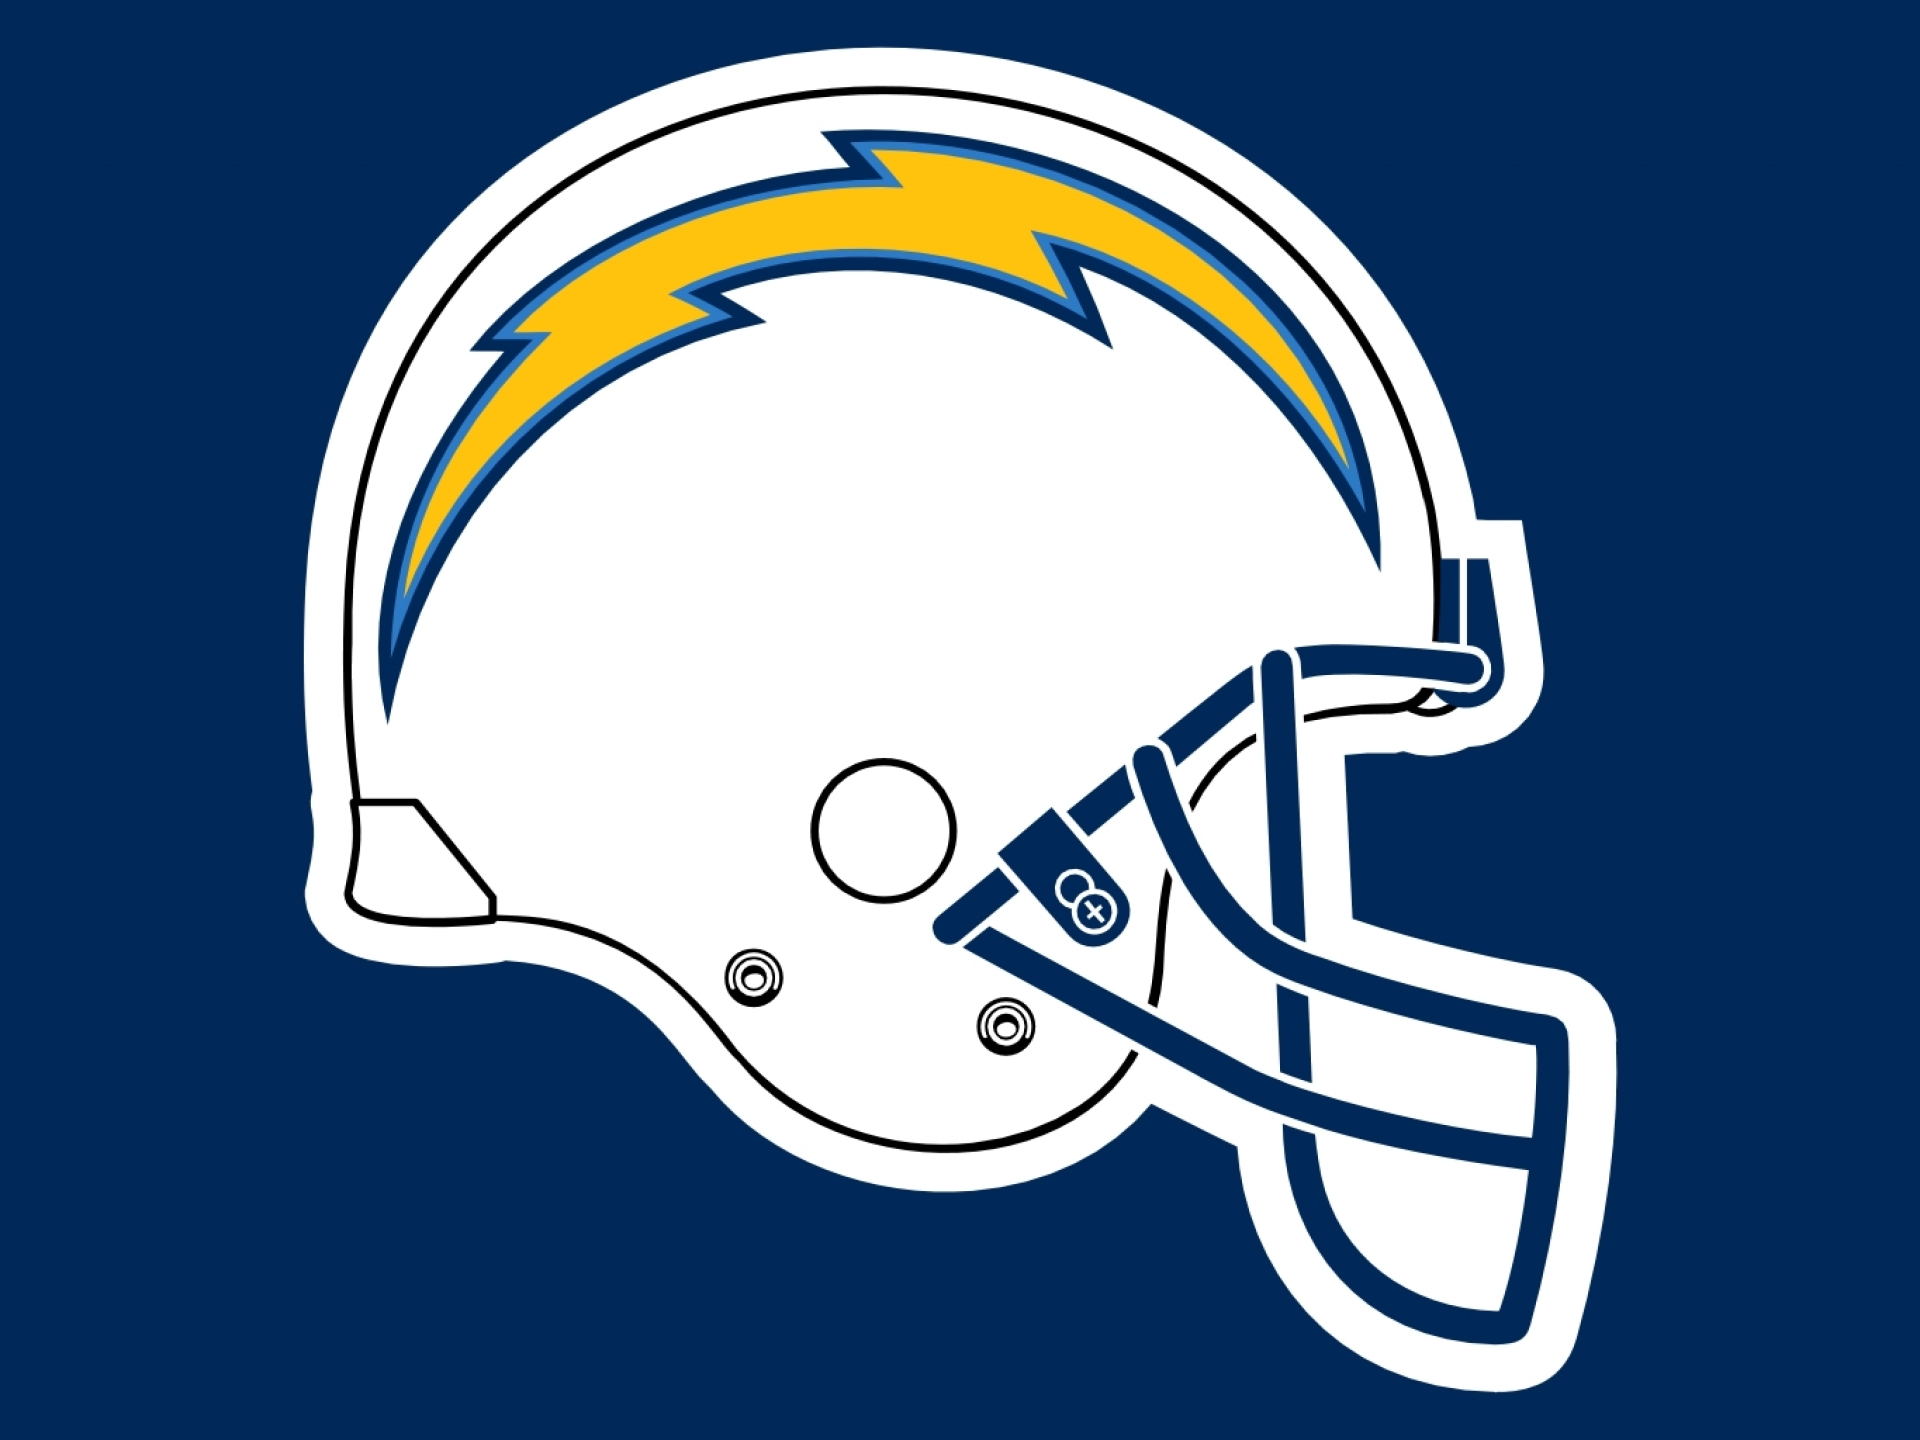 San Diego Chargers Nfl Football Ew Wallpaper 1920x1440